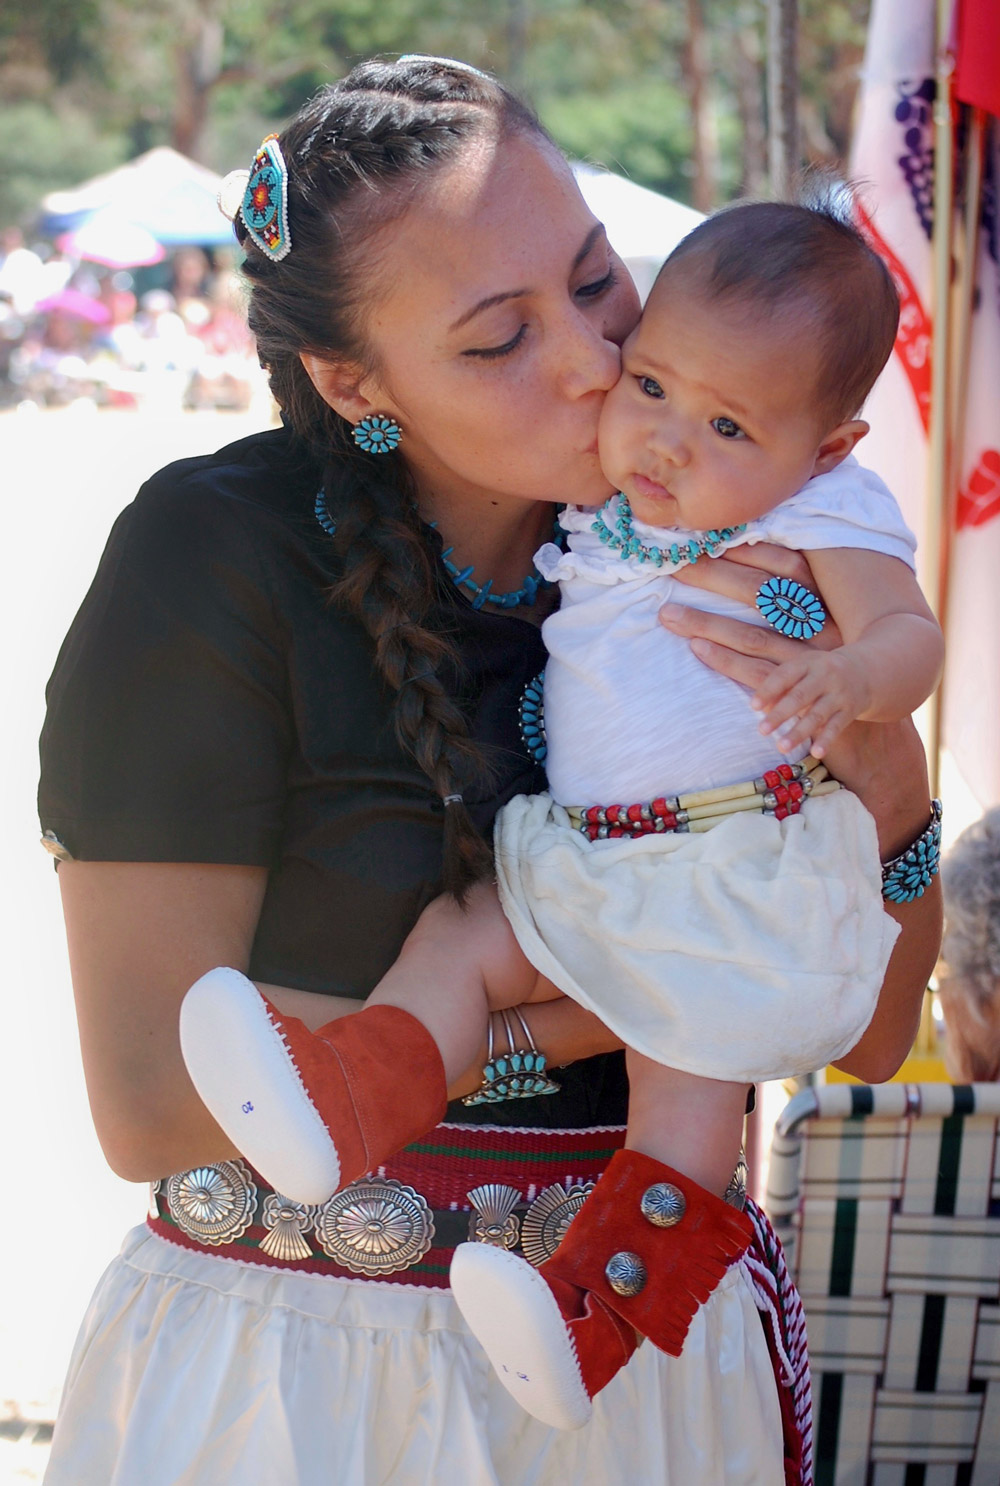 Ginger Sykes Torres holding and kissing her child.